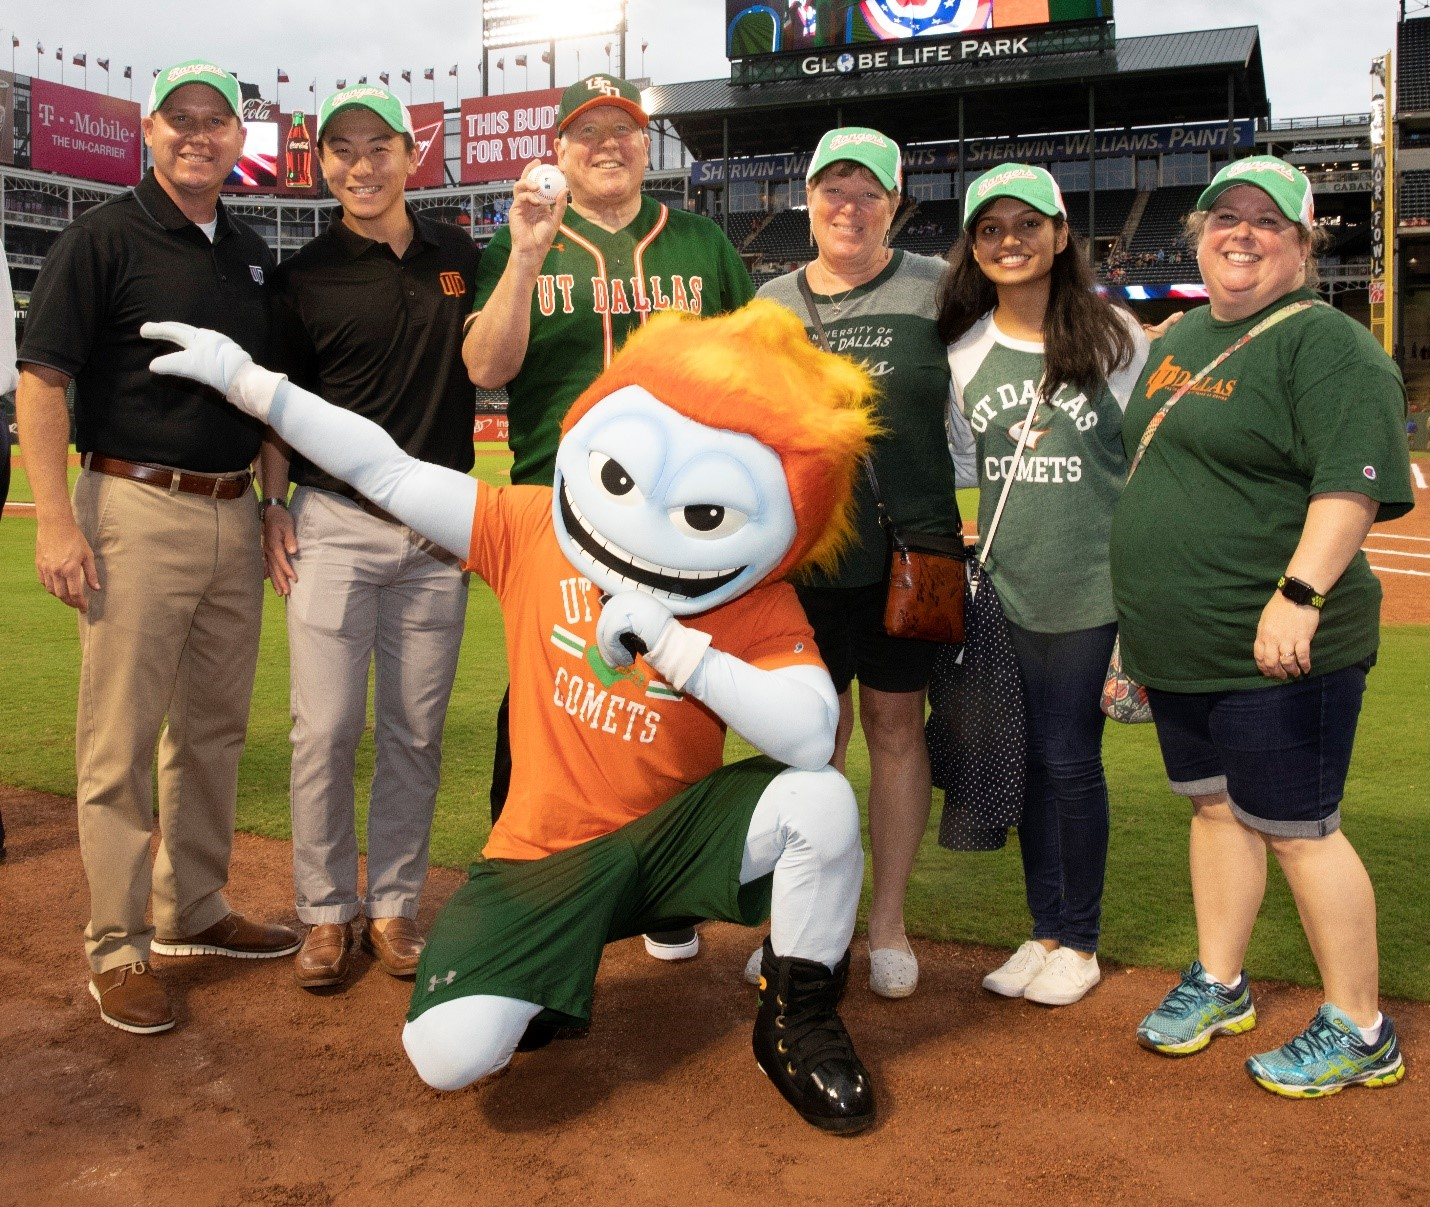 UT Dallas Night at the Ballpark